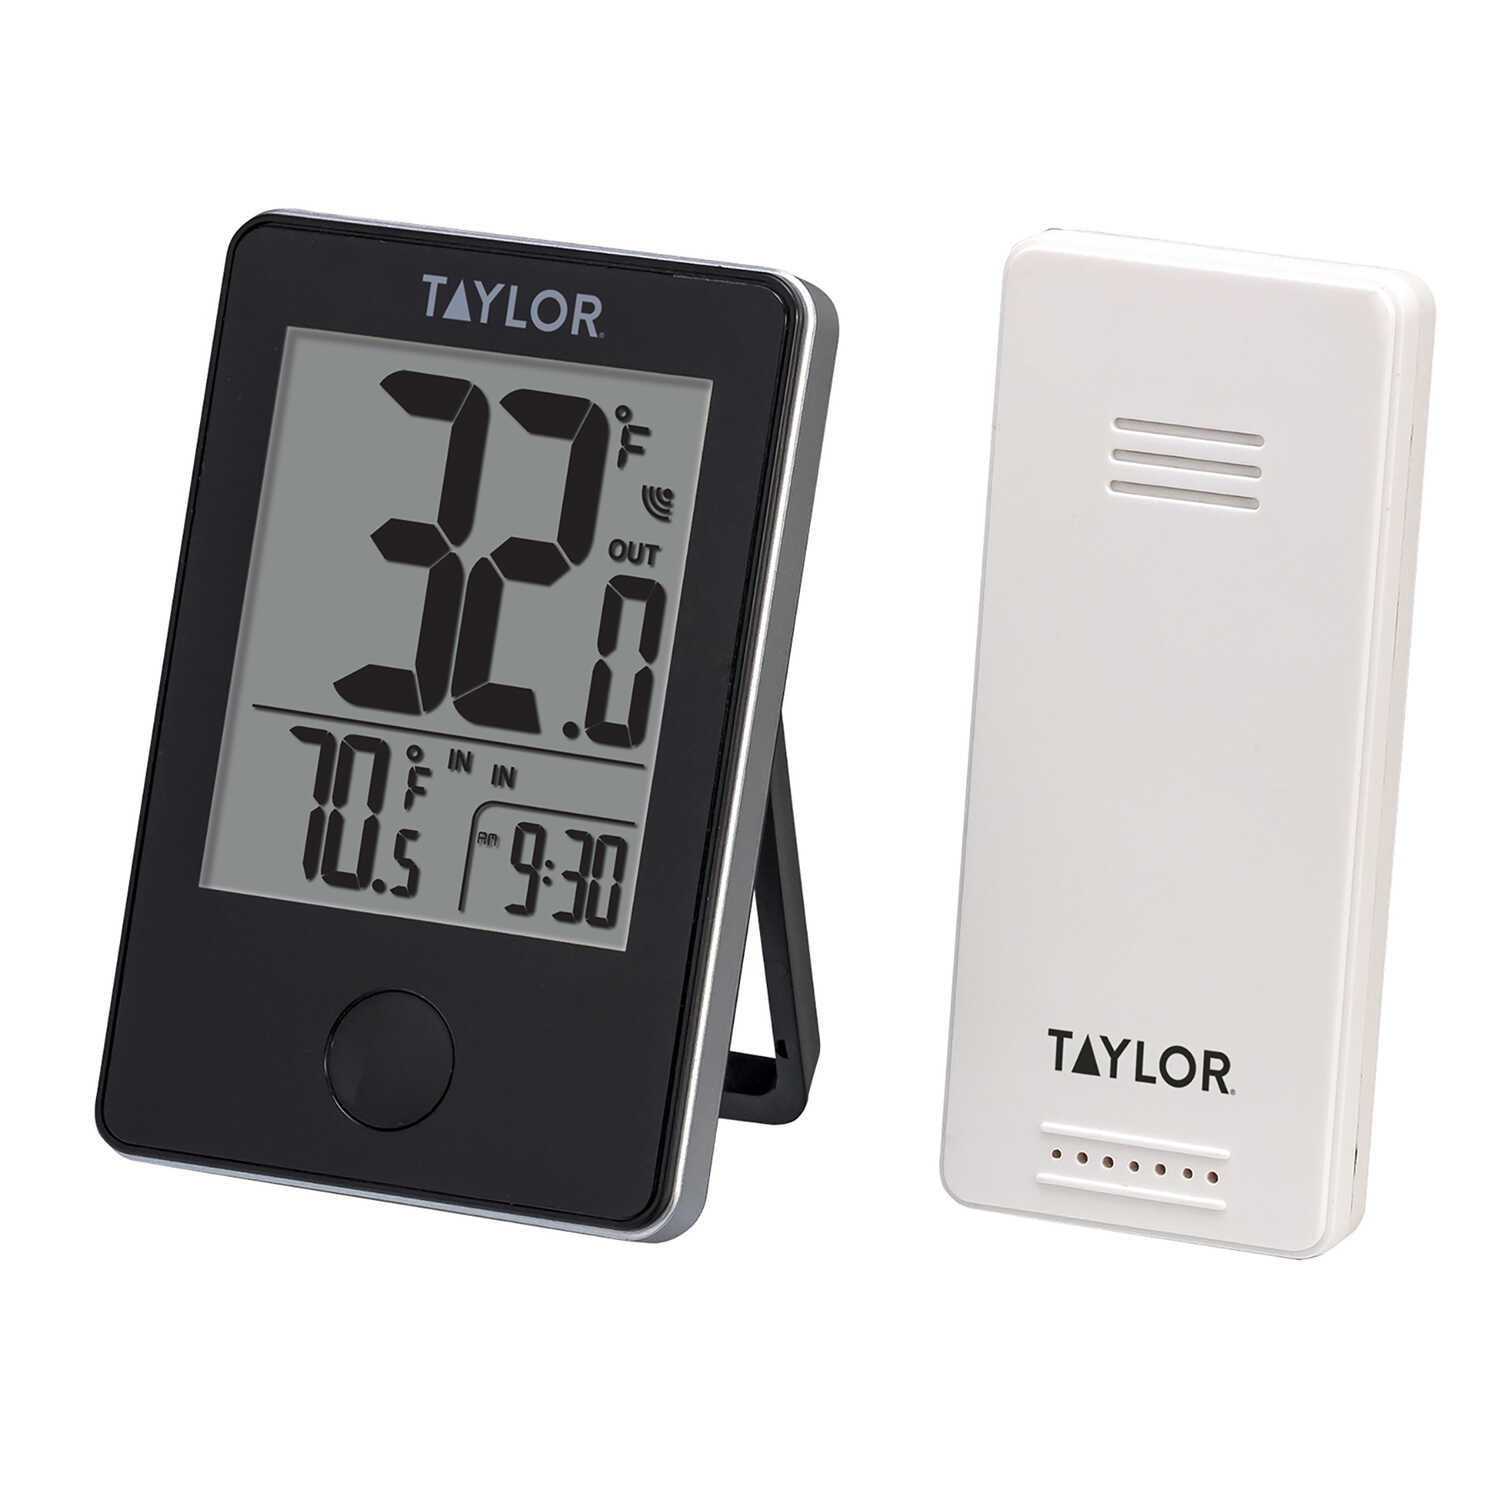 Taylor  Digital Thermometer  Plastic  Black